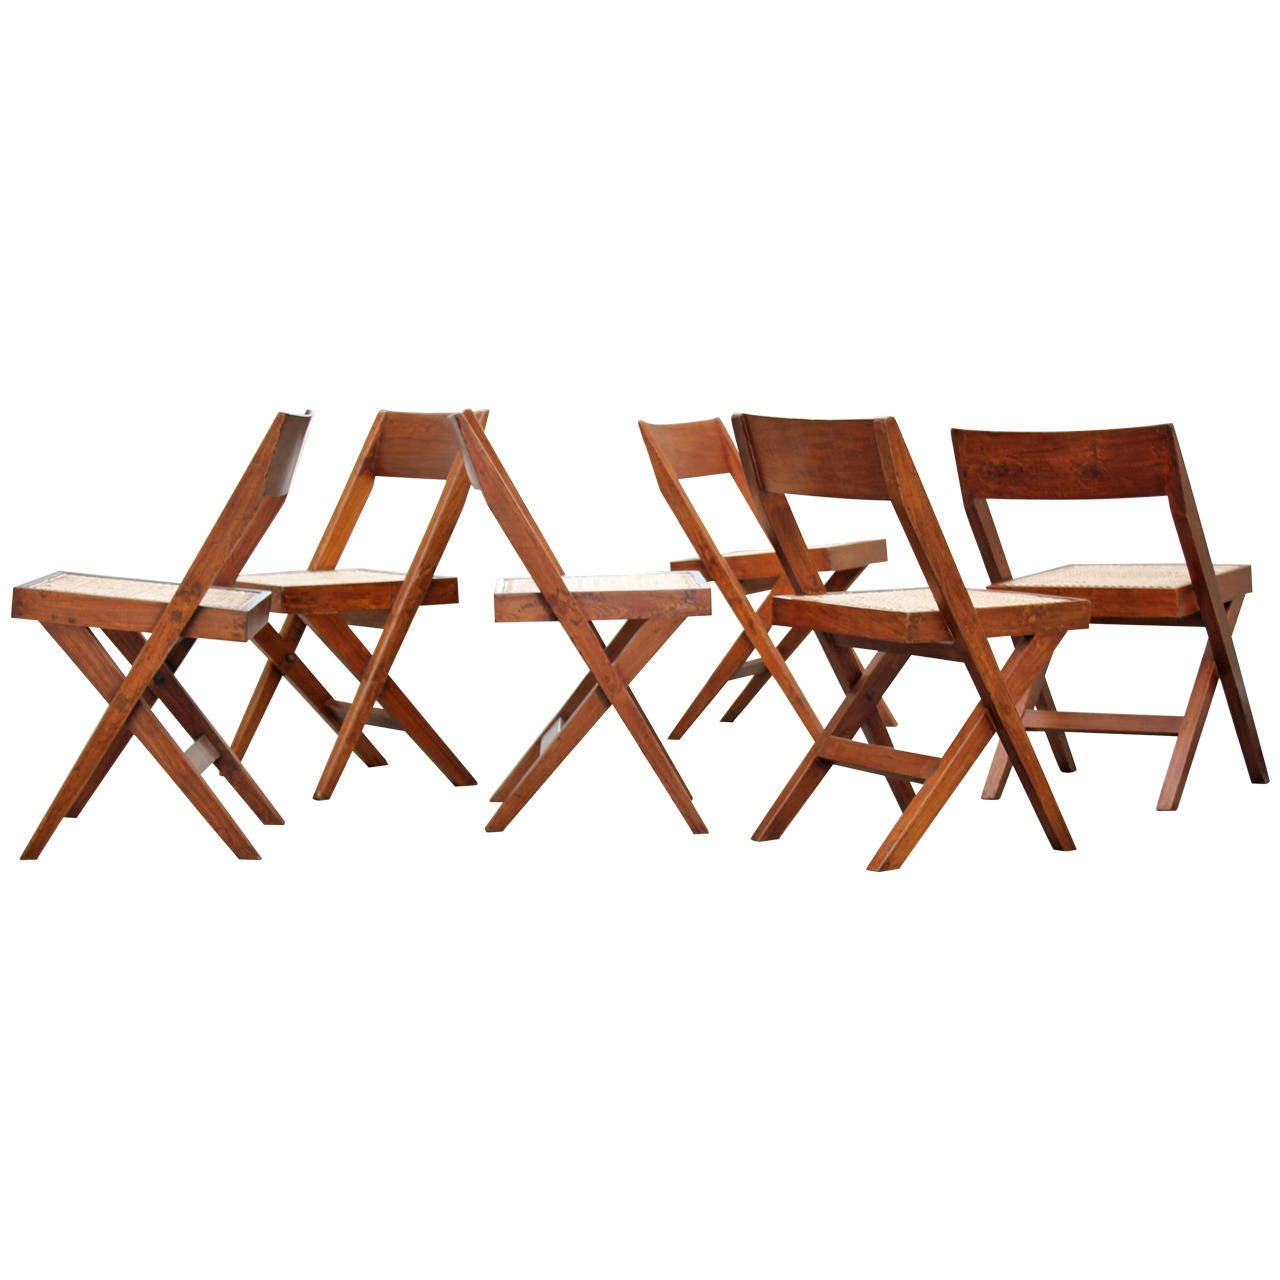 Set of Six Pierre Jeanneret Library Chairs